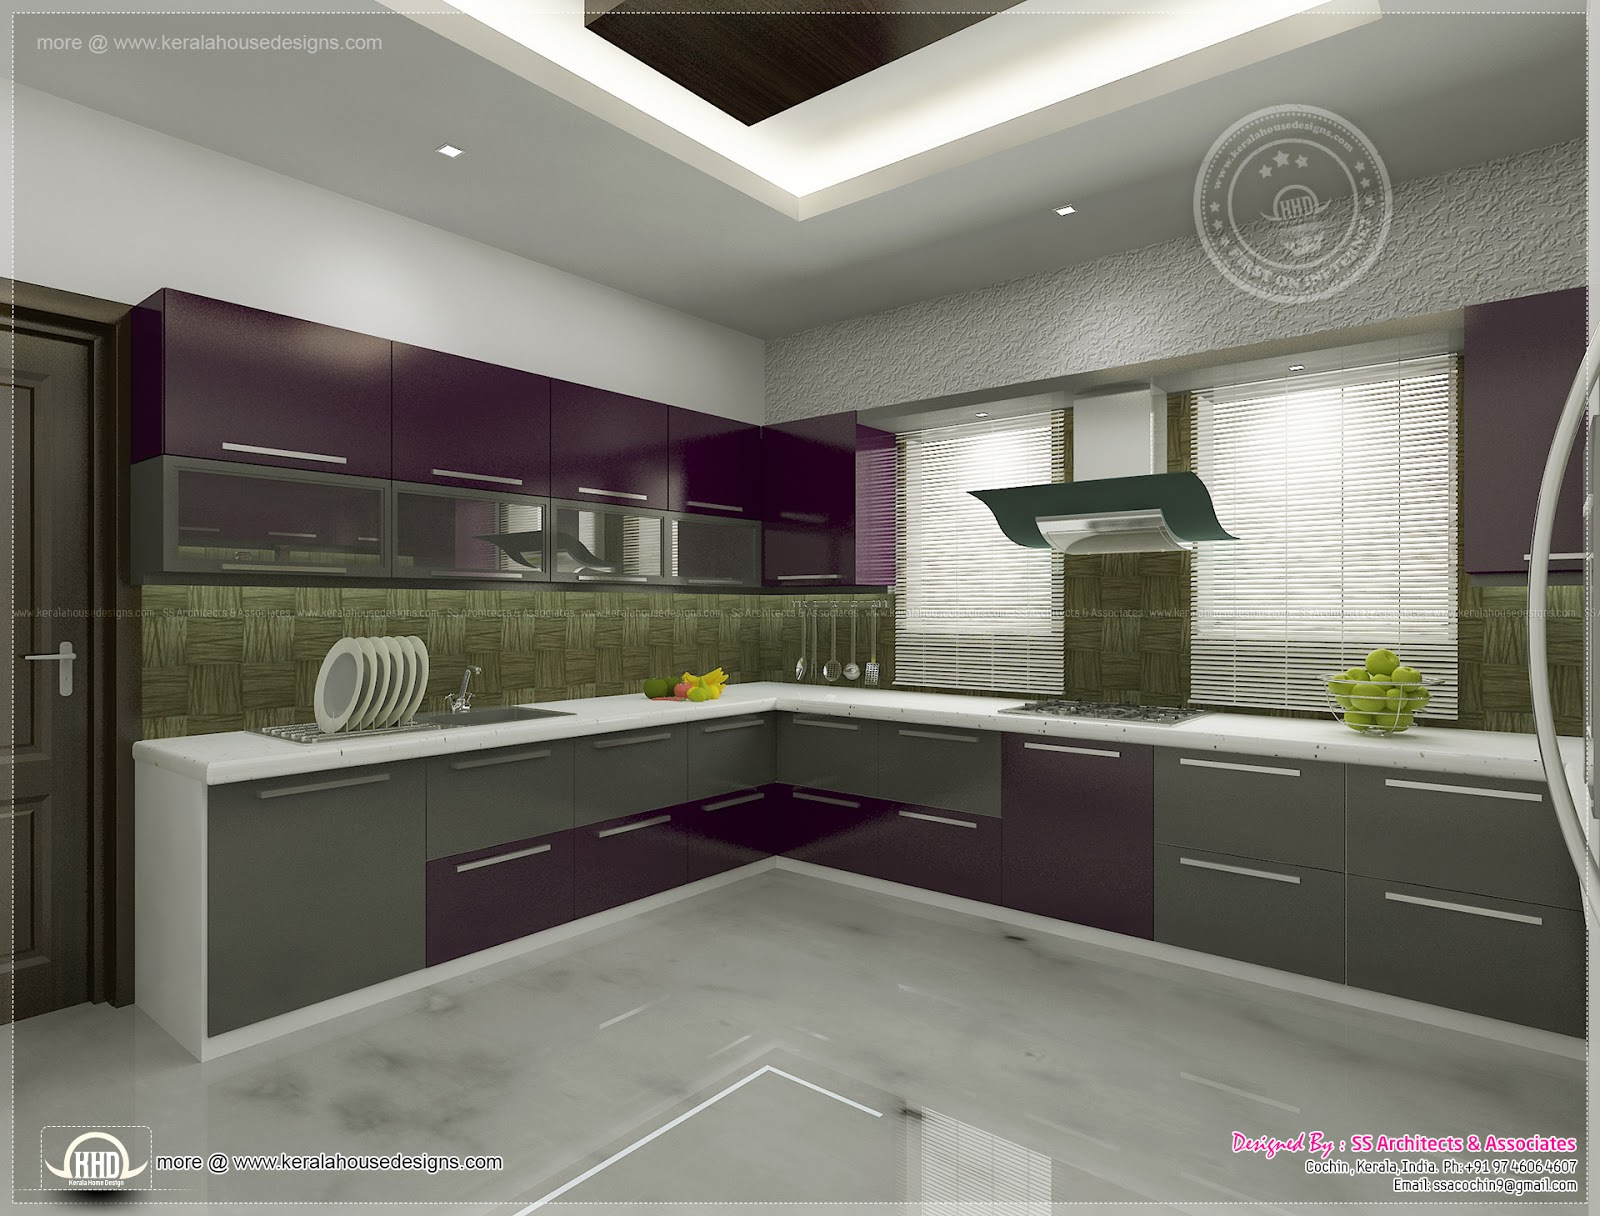 Kitchen interior views by ss architects cochin kerala for House designs interior